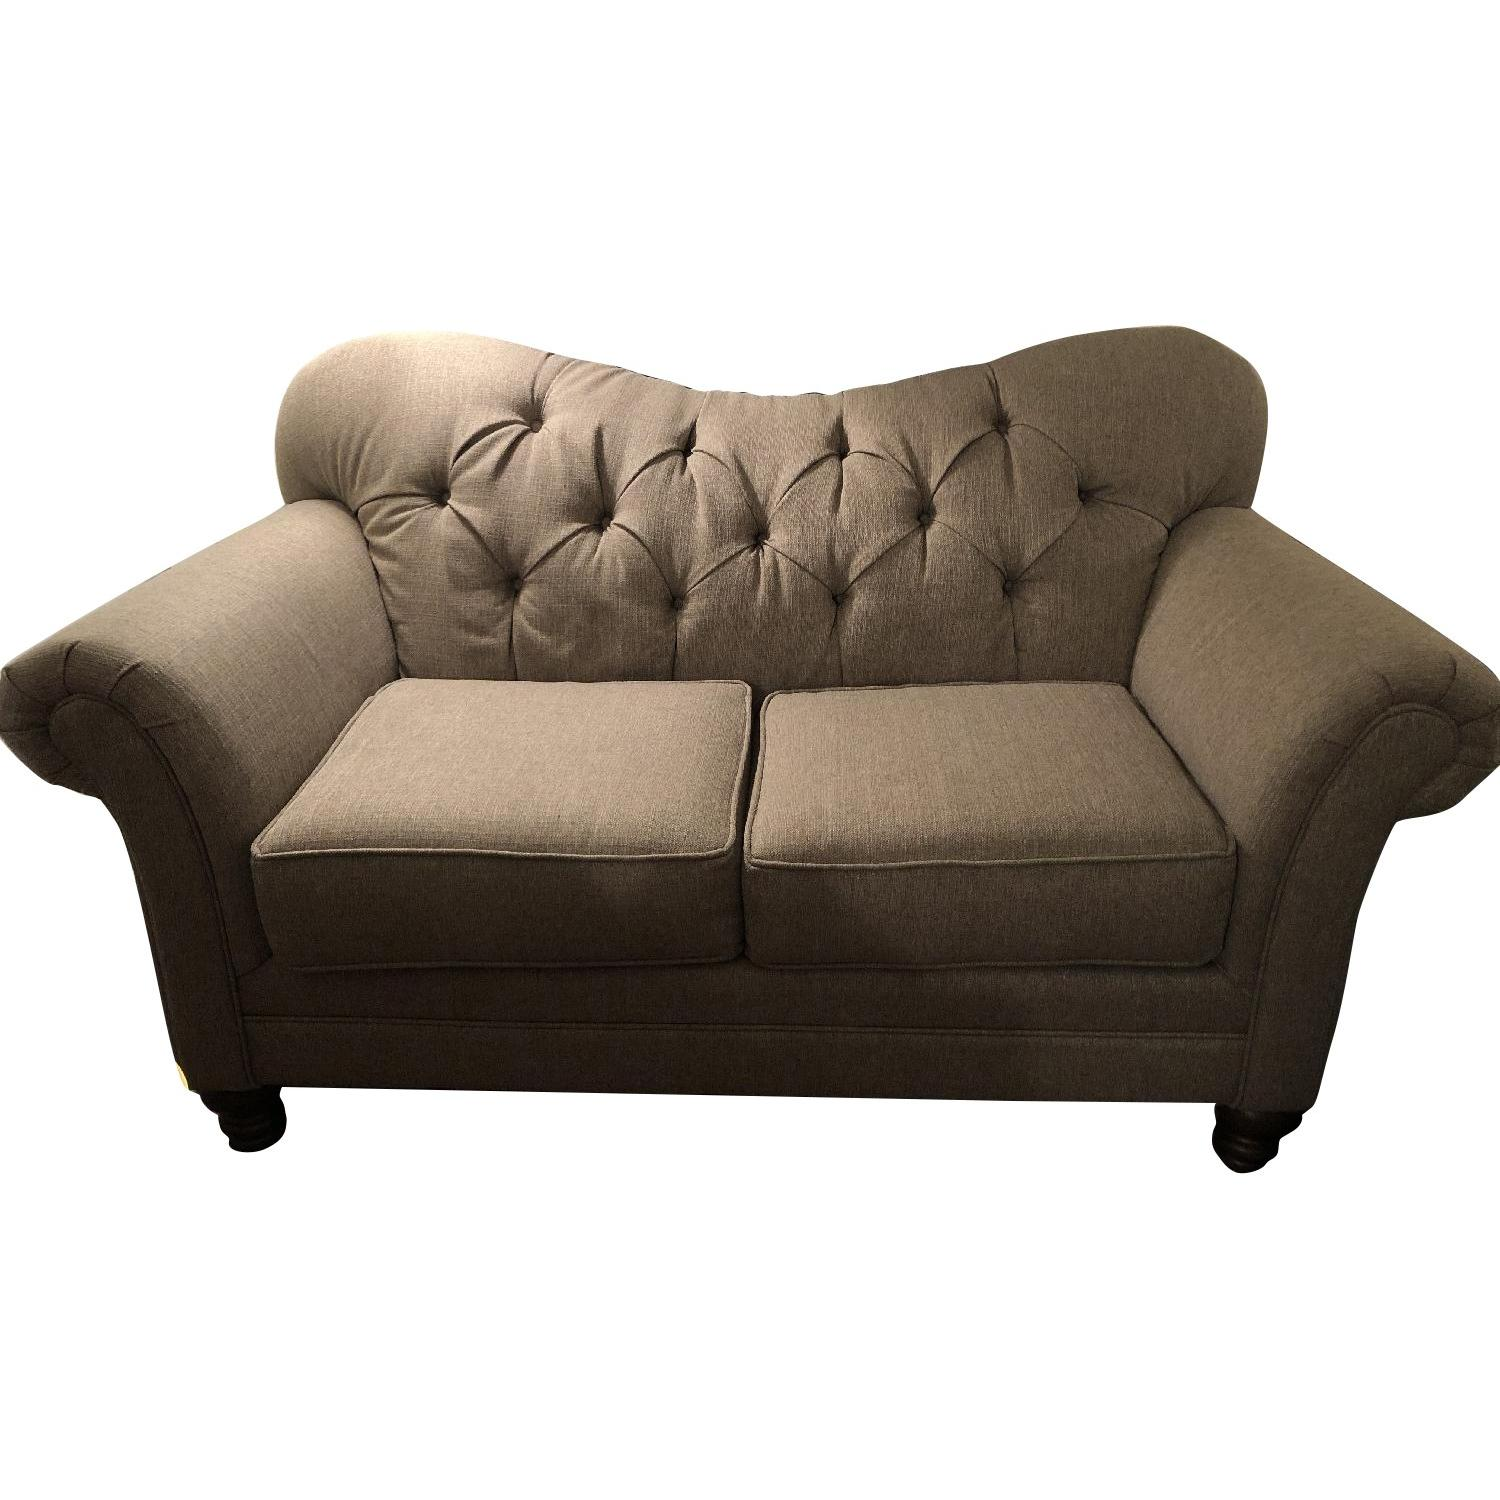 Gray/Natural Tufted Loveseat - image-0